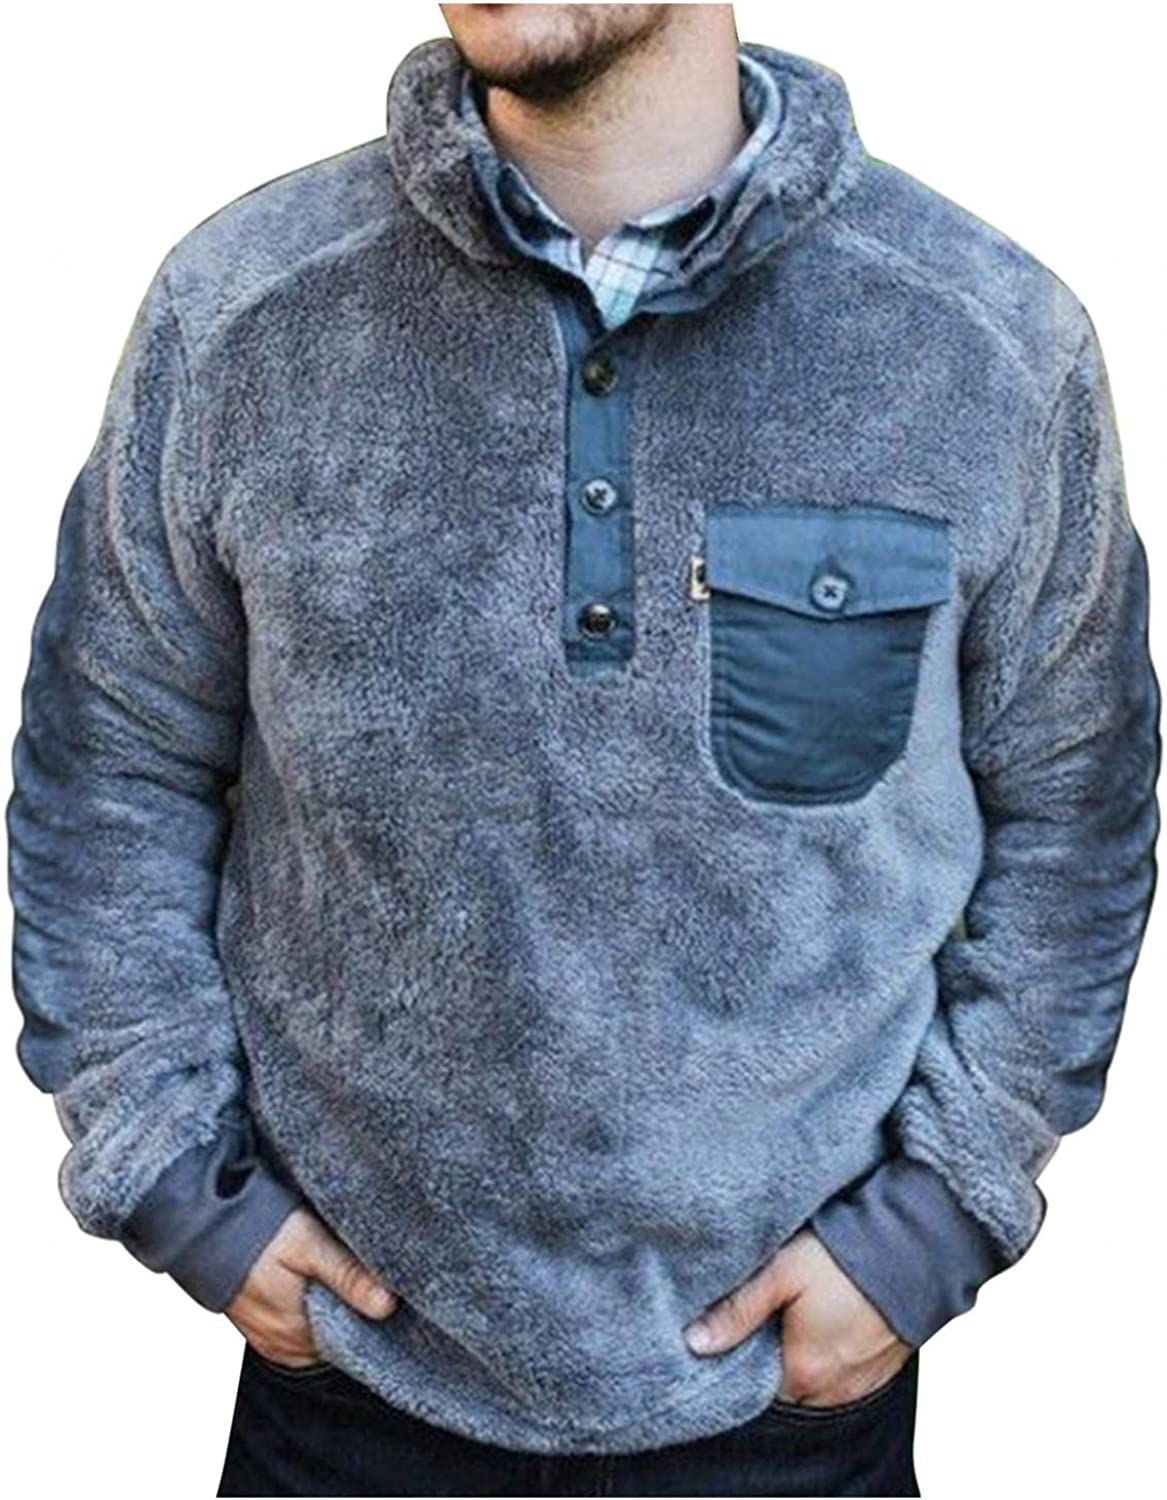 Sweatshirts for Men Casual Polo Long Sleeve Button Plain Faux Fur Pullover Sweater Tops with Pocket